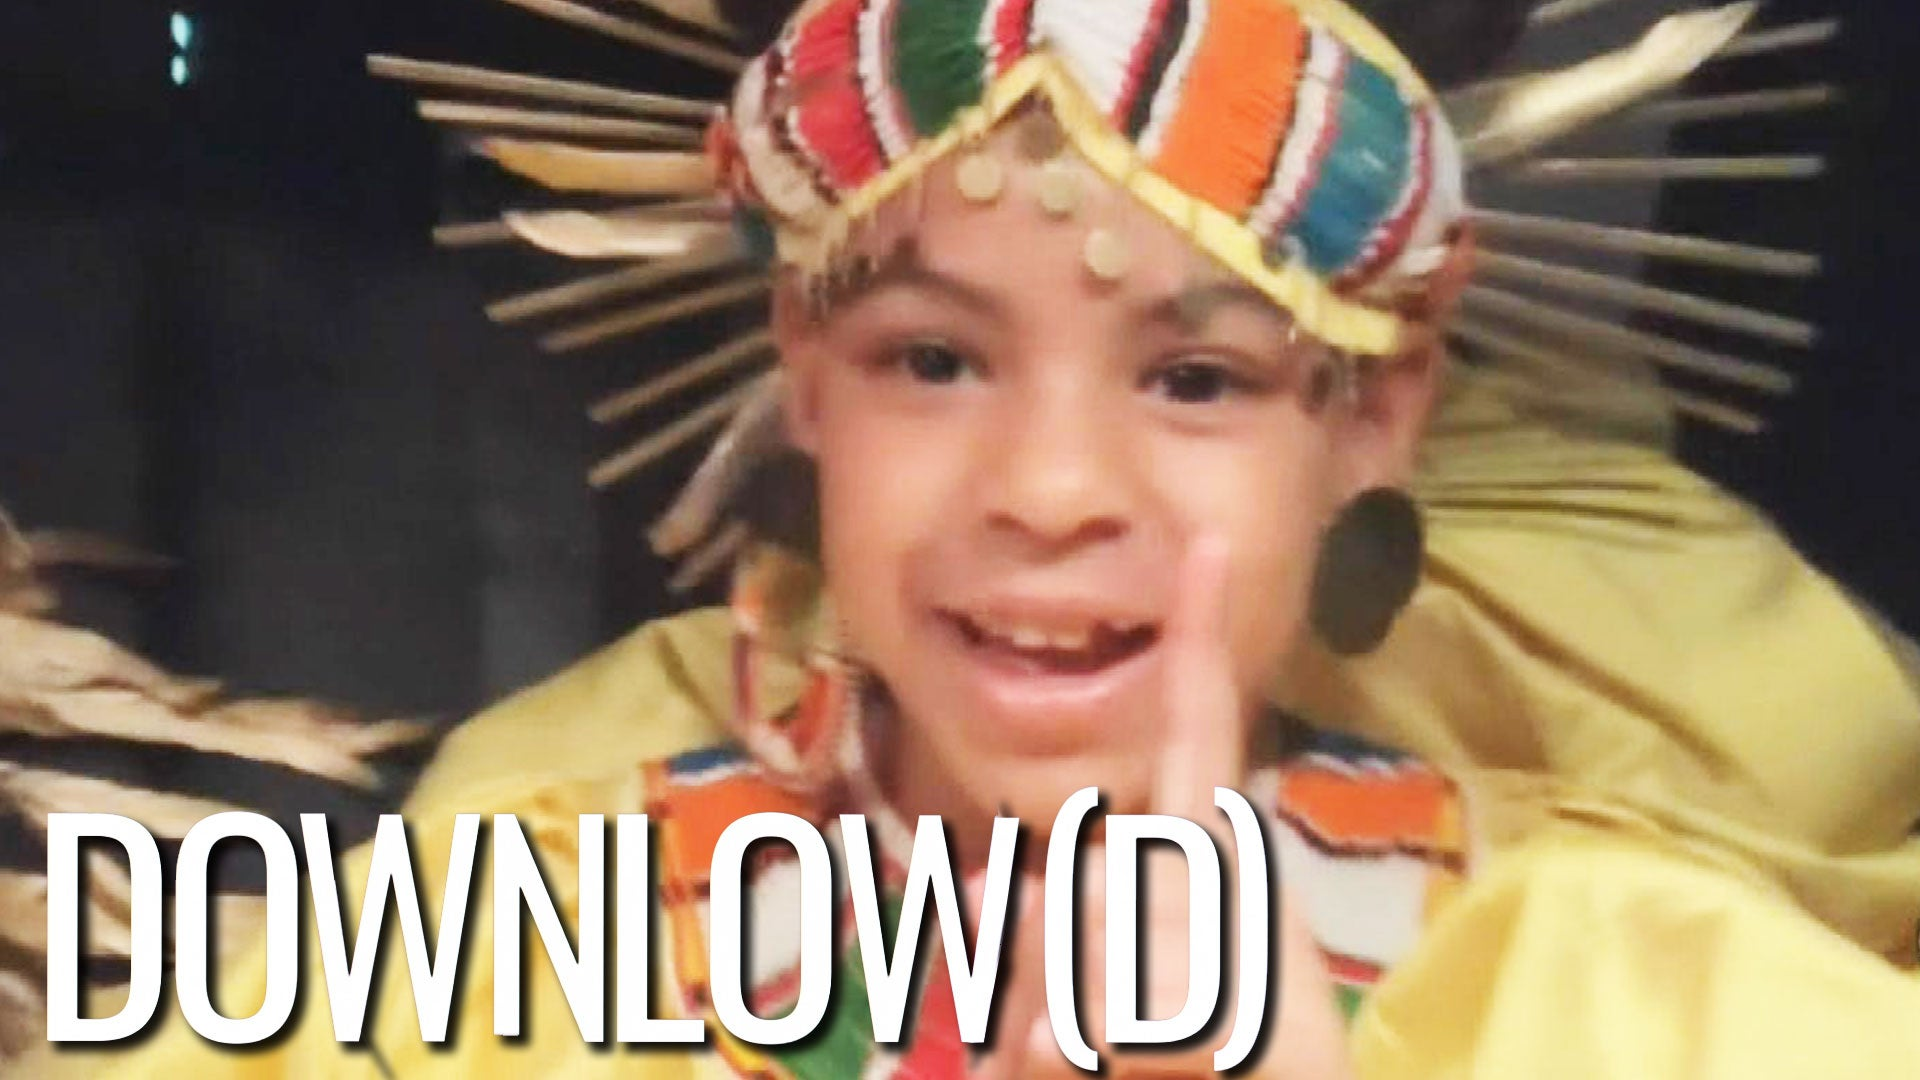 Blue Ivy Steals the Show During Beyonce's TV Special | The Downlow(d)